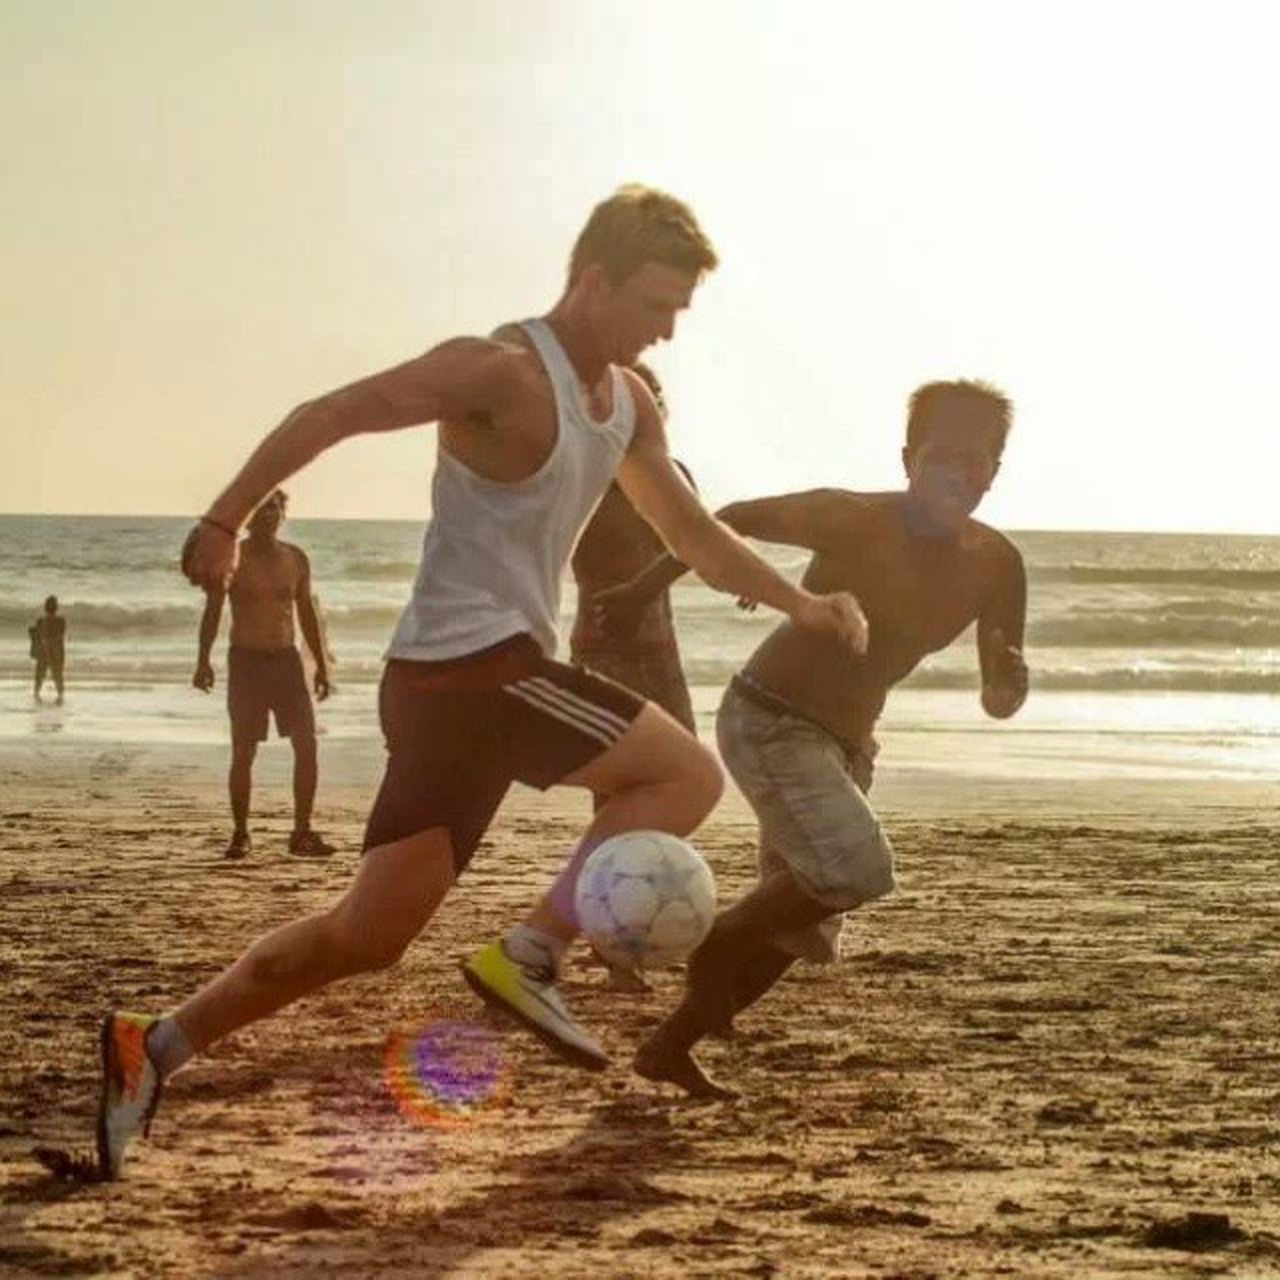 beach, playing, running, sand, soccer ball, soccer, motion, vitality, competition, sea, full length, sport, adult, people, outdoors, leisure activity, men, togetherness, group of people, boys, child, day, sunset, competitive sport, young adult, sports race, american football - ball, sportsman, sky